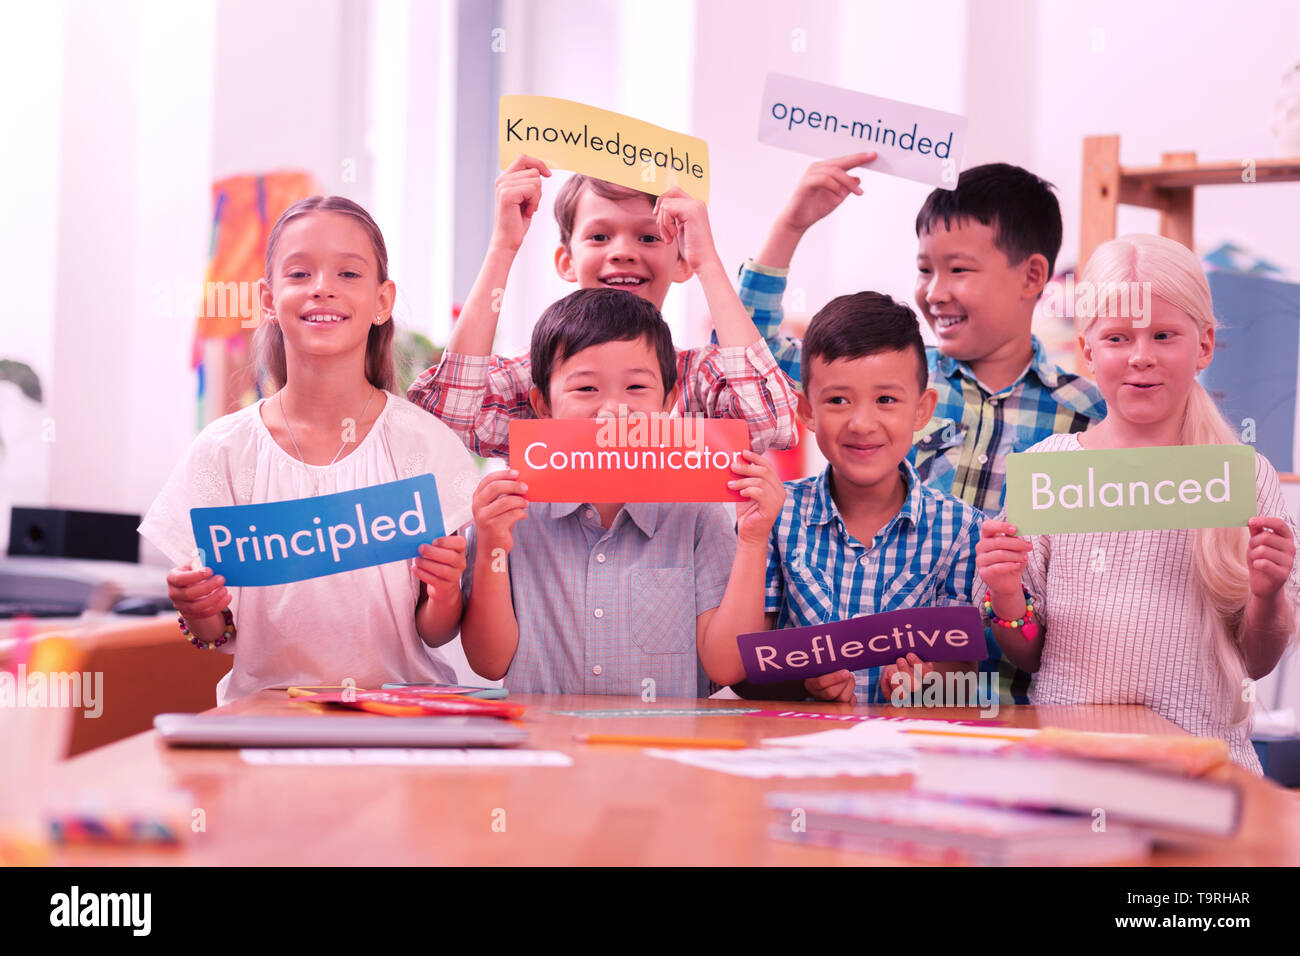 Children of different races holding colorful adjectives. - Stock Image